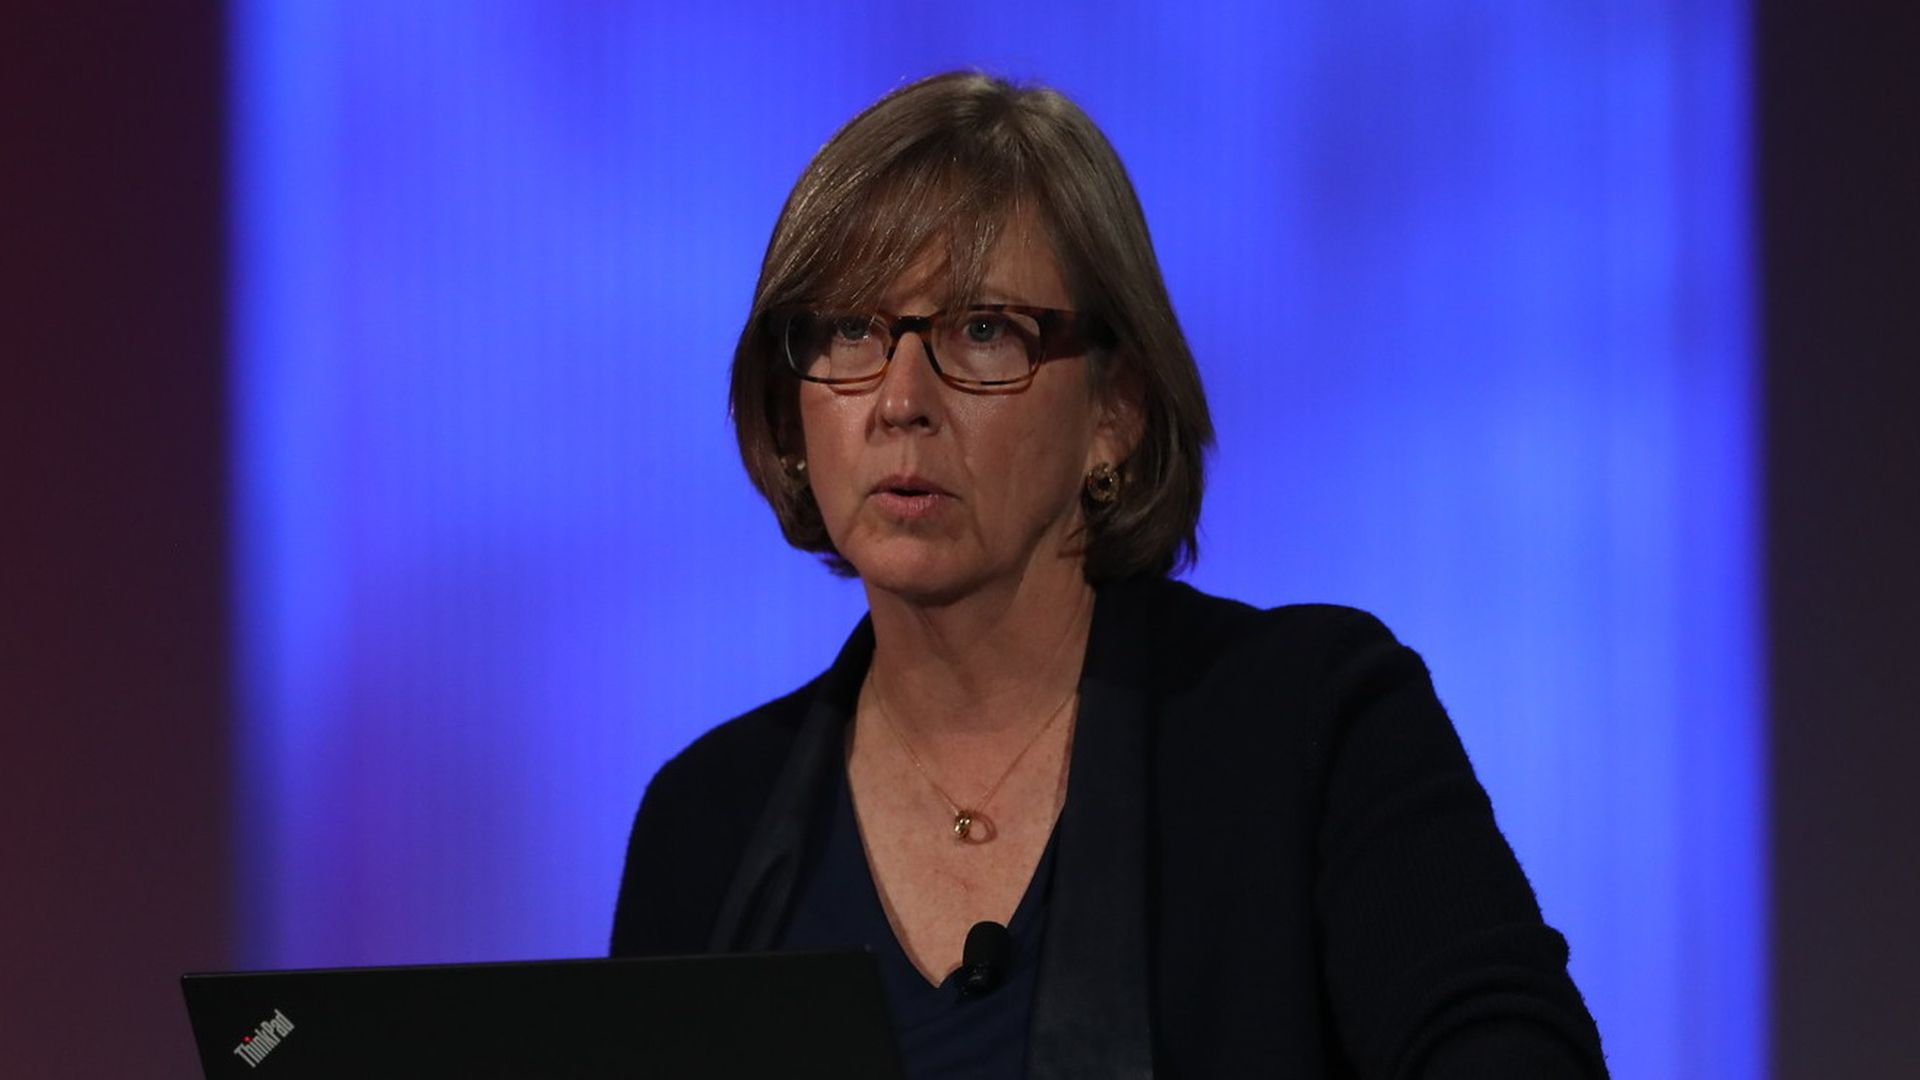 Mary Meeker presenting the Internet Trends report